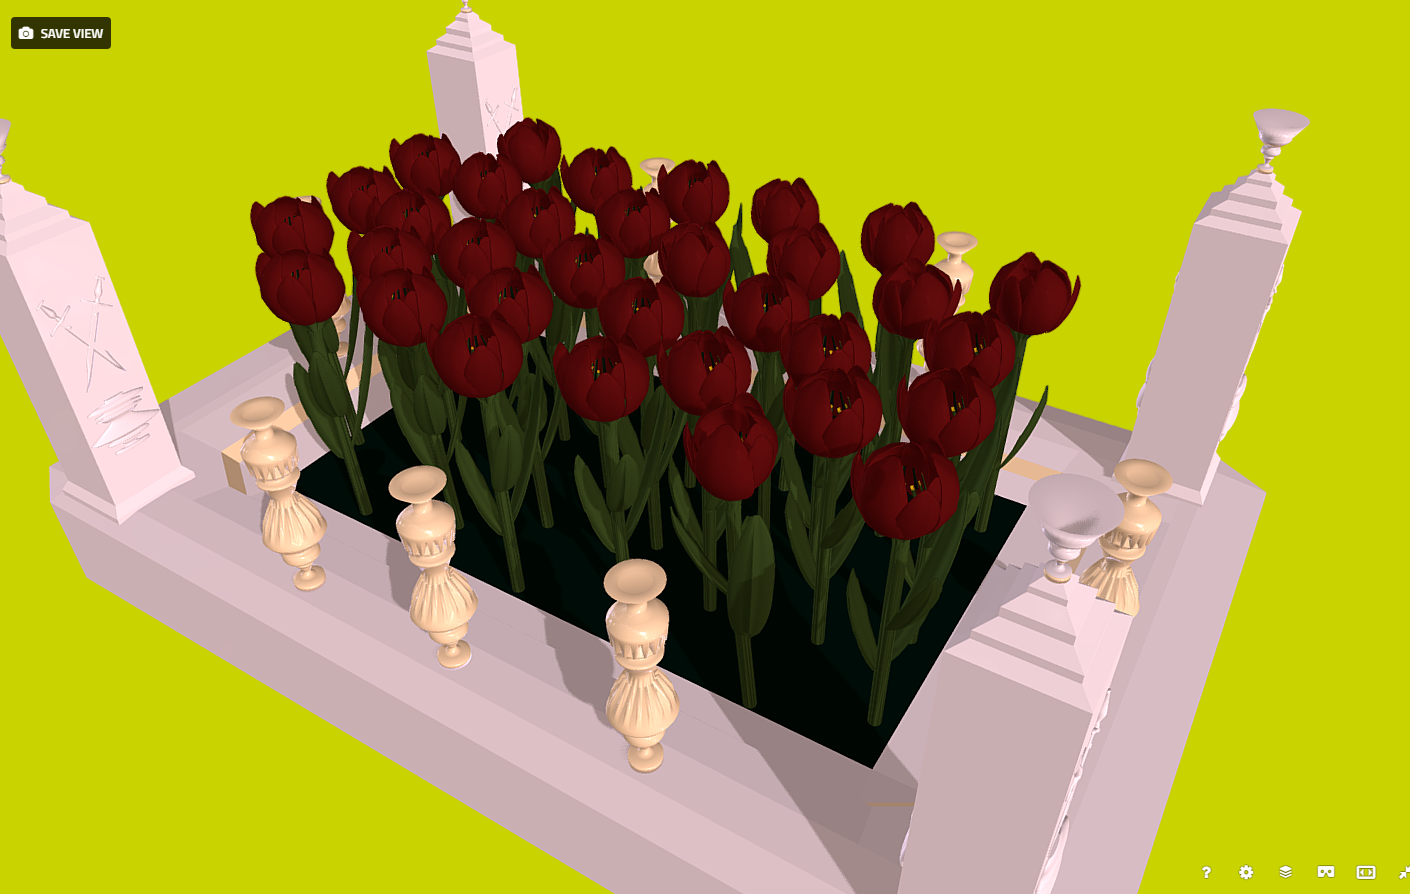 Flowers - Red Tulips in the flowerbed 3d model fbx 269932